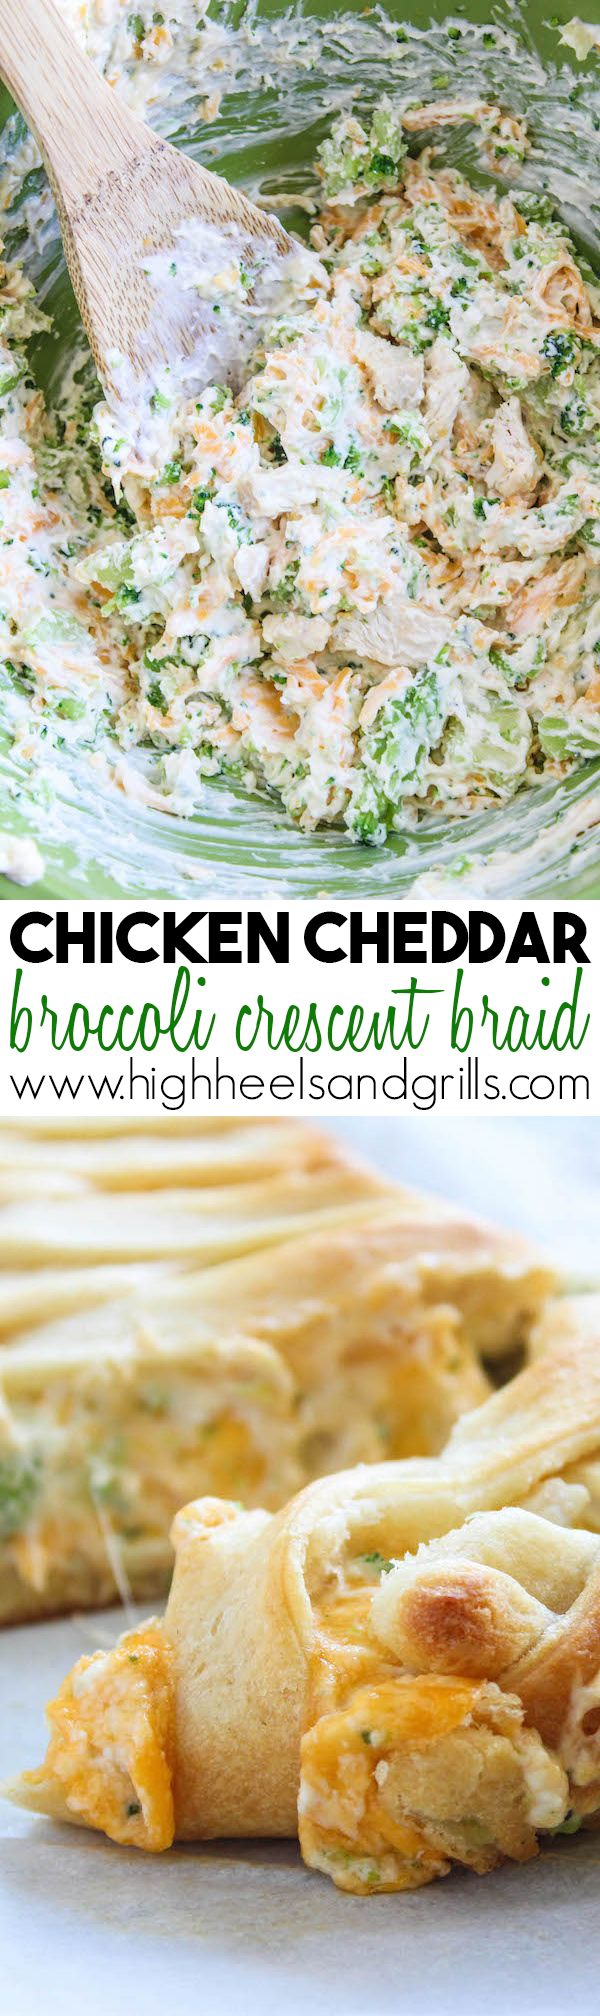 This Chicken Cheddar Broccoli Crescent Braid is made up of cream cheese, chicken, cheddar, and broccoli stuffed into a beautiful crescent braid. {Which looks more intimidating than it really is} This is a dinner favorite for sure!